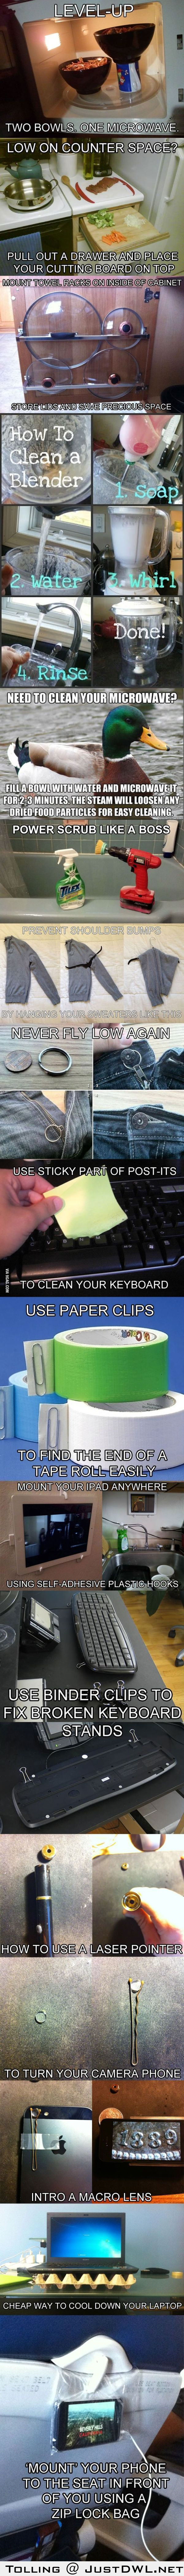 15 #Clever #Life #Hacks to Simplify Your #World